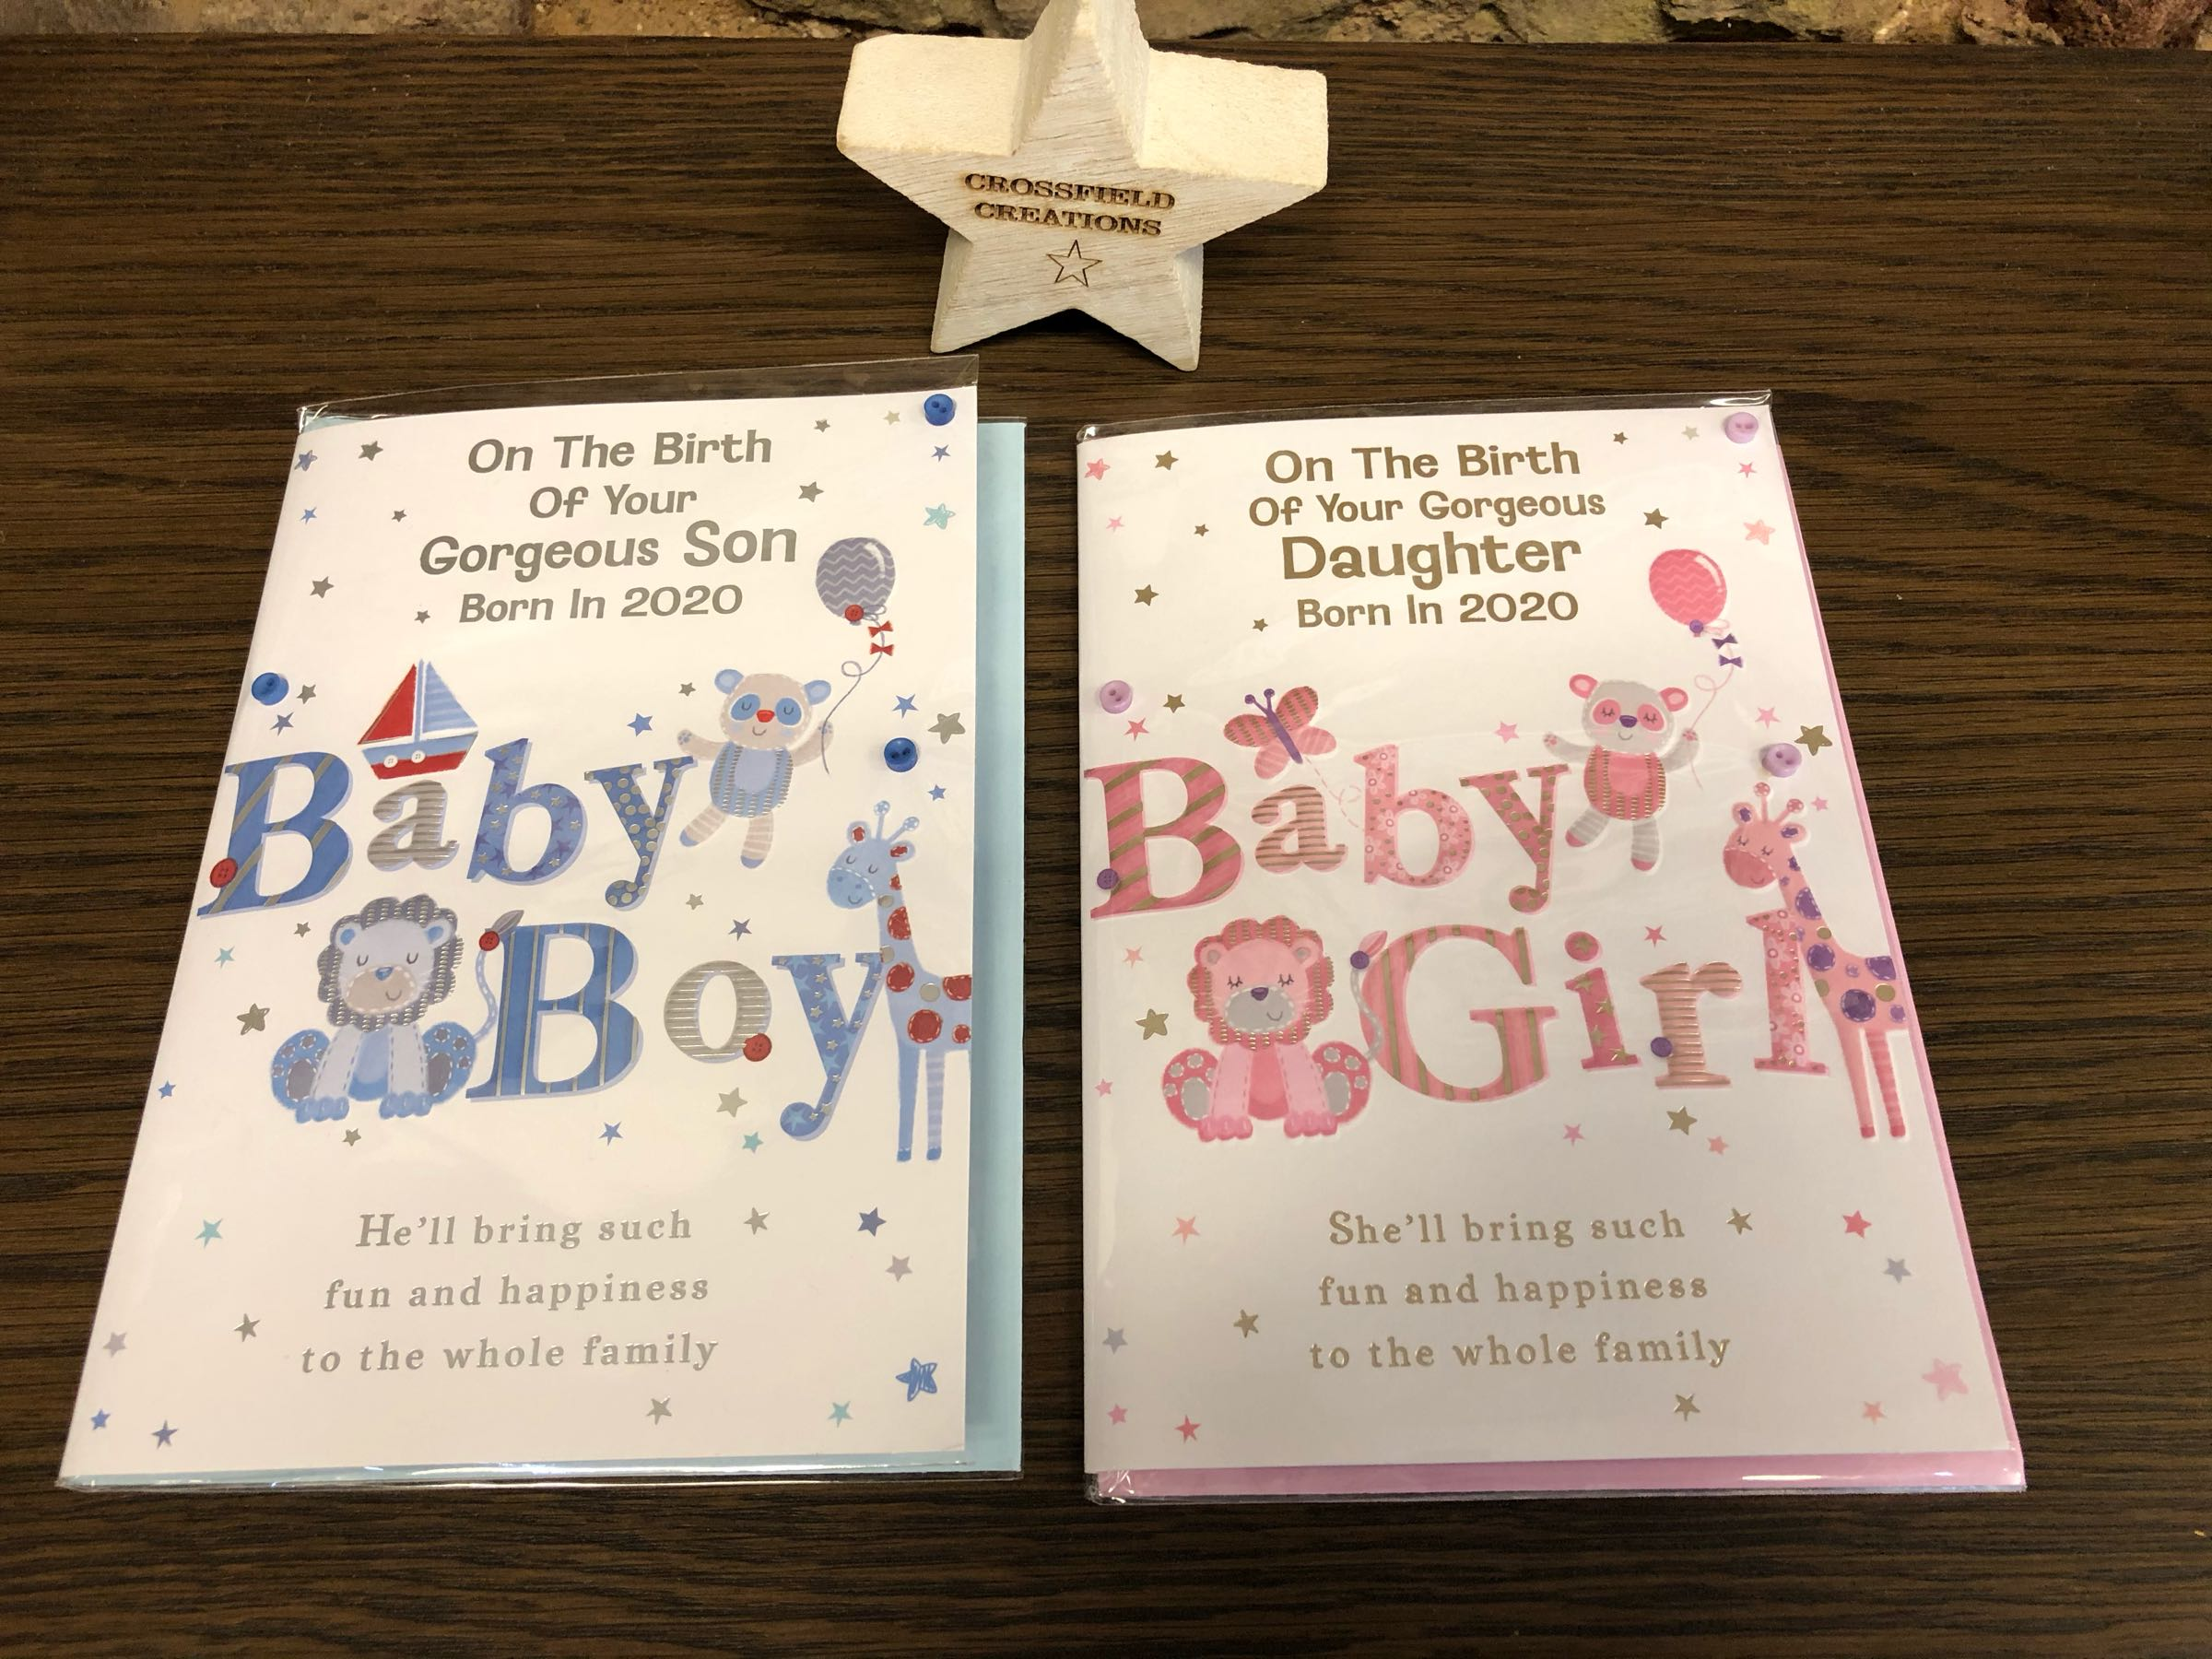 New Baby Greetings Cards - Born in 2020